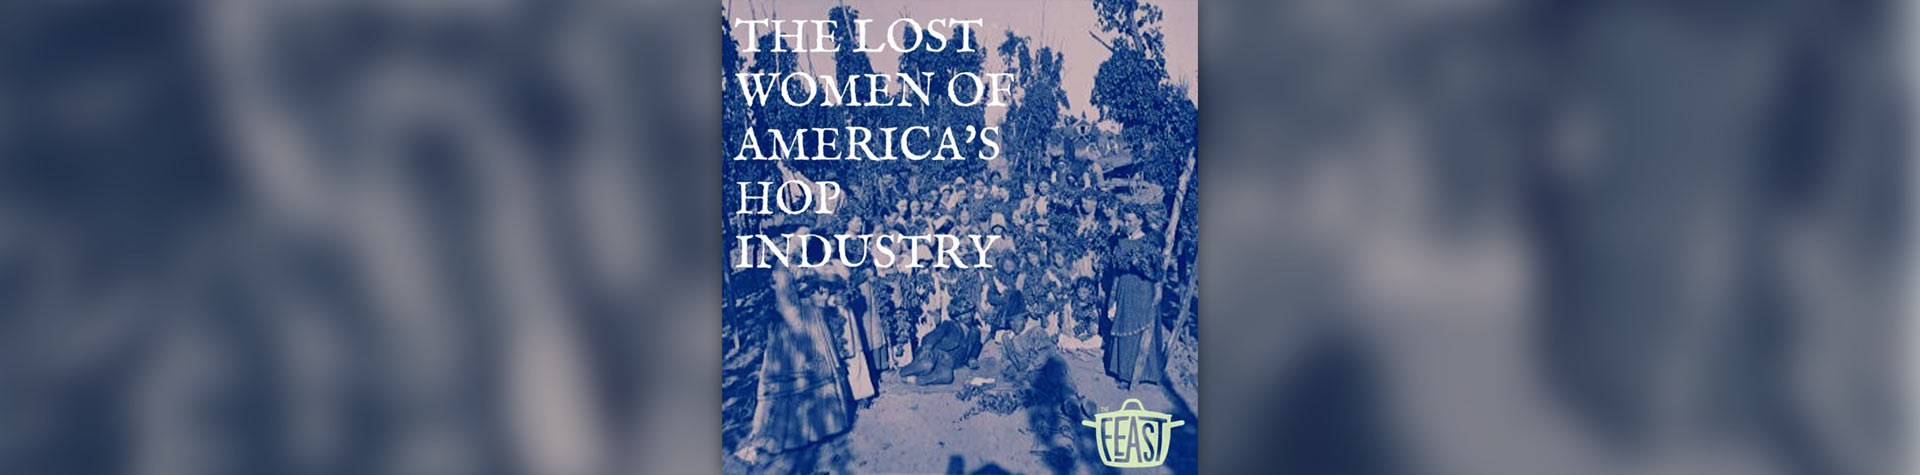 The Lost Women of America's Hop Industry